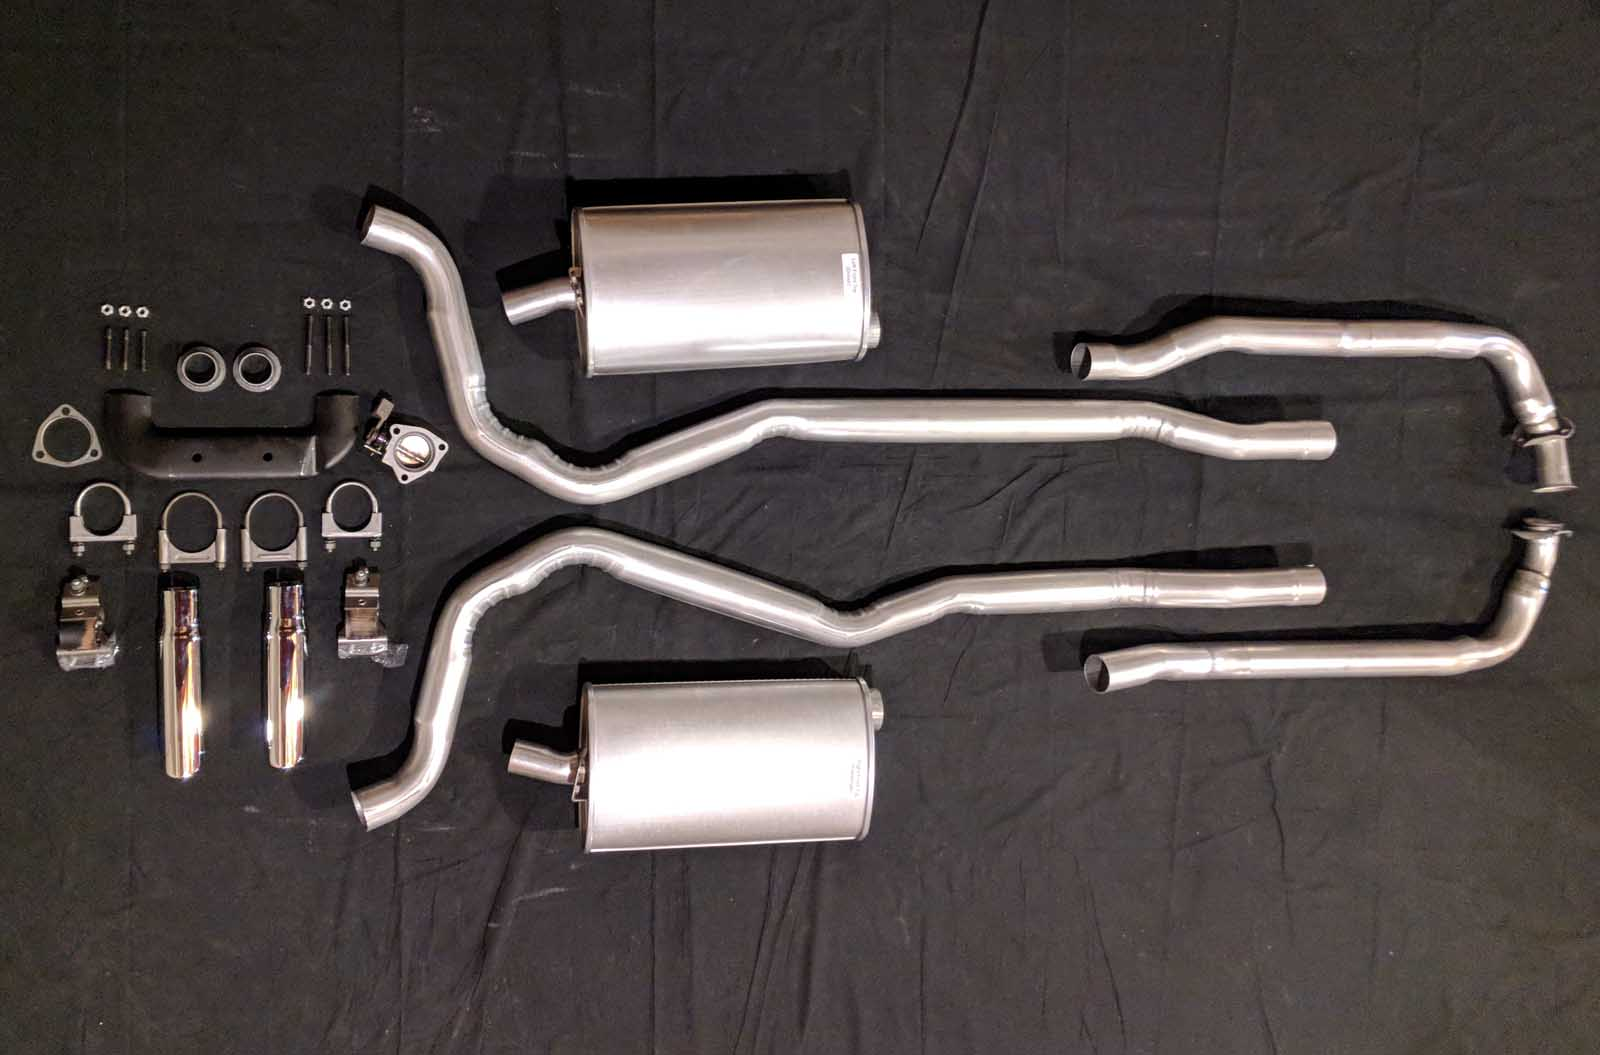 1968 Corvette Small Block Hp Manual Exhaust System Muscle Car Exhaust Systems